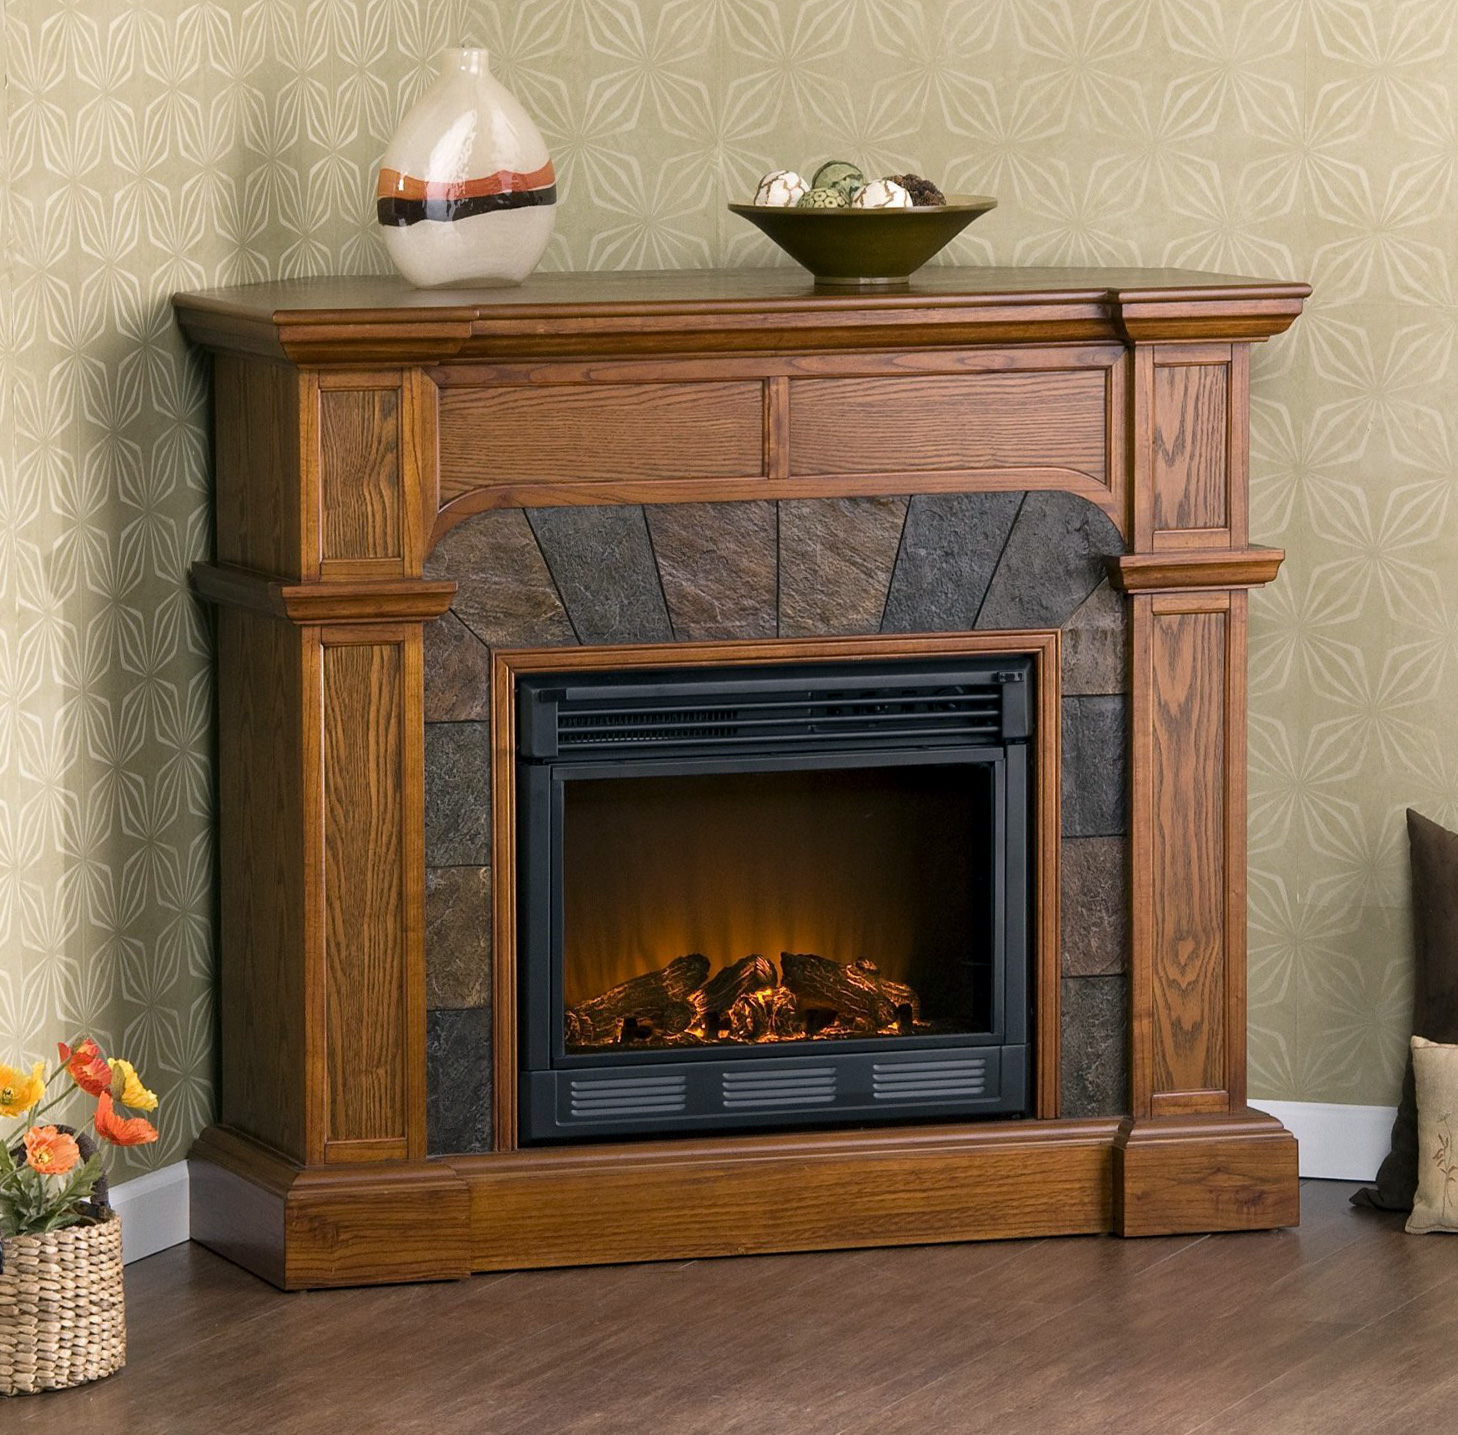 Stunning Stone Mantel Electric Fireplace 1458 x 1435 · 710 kB · jpeg